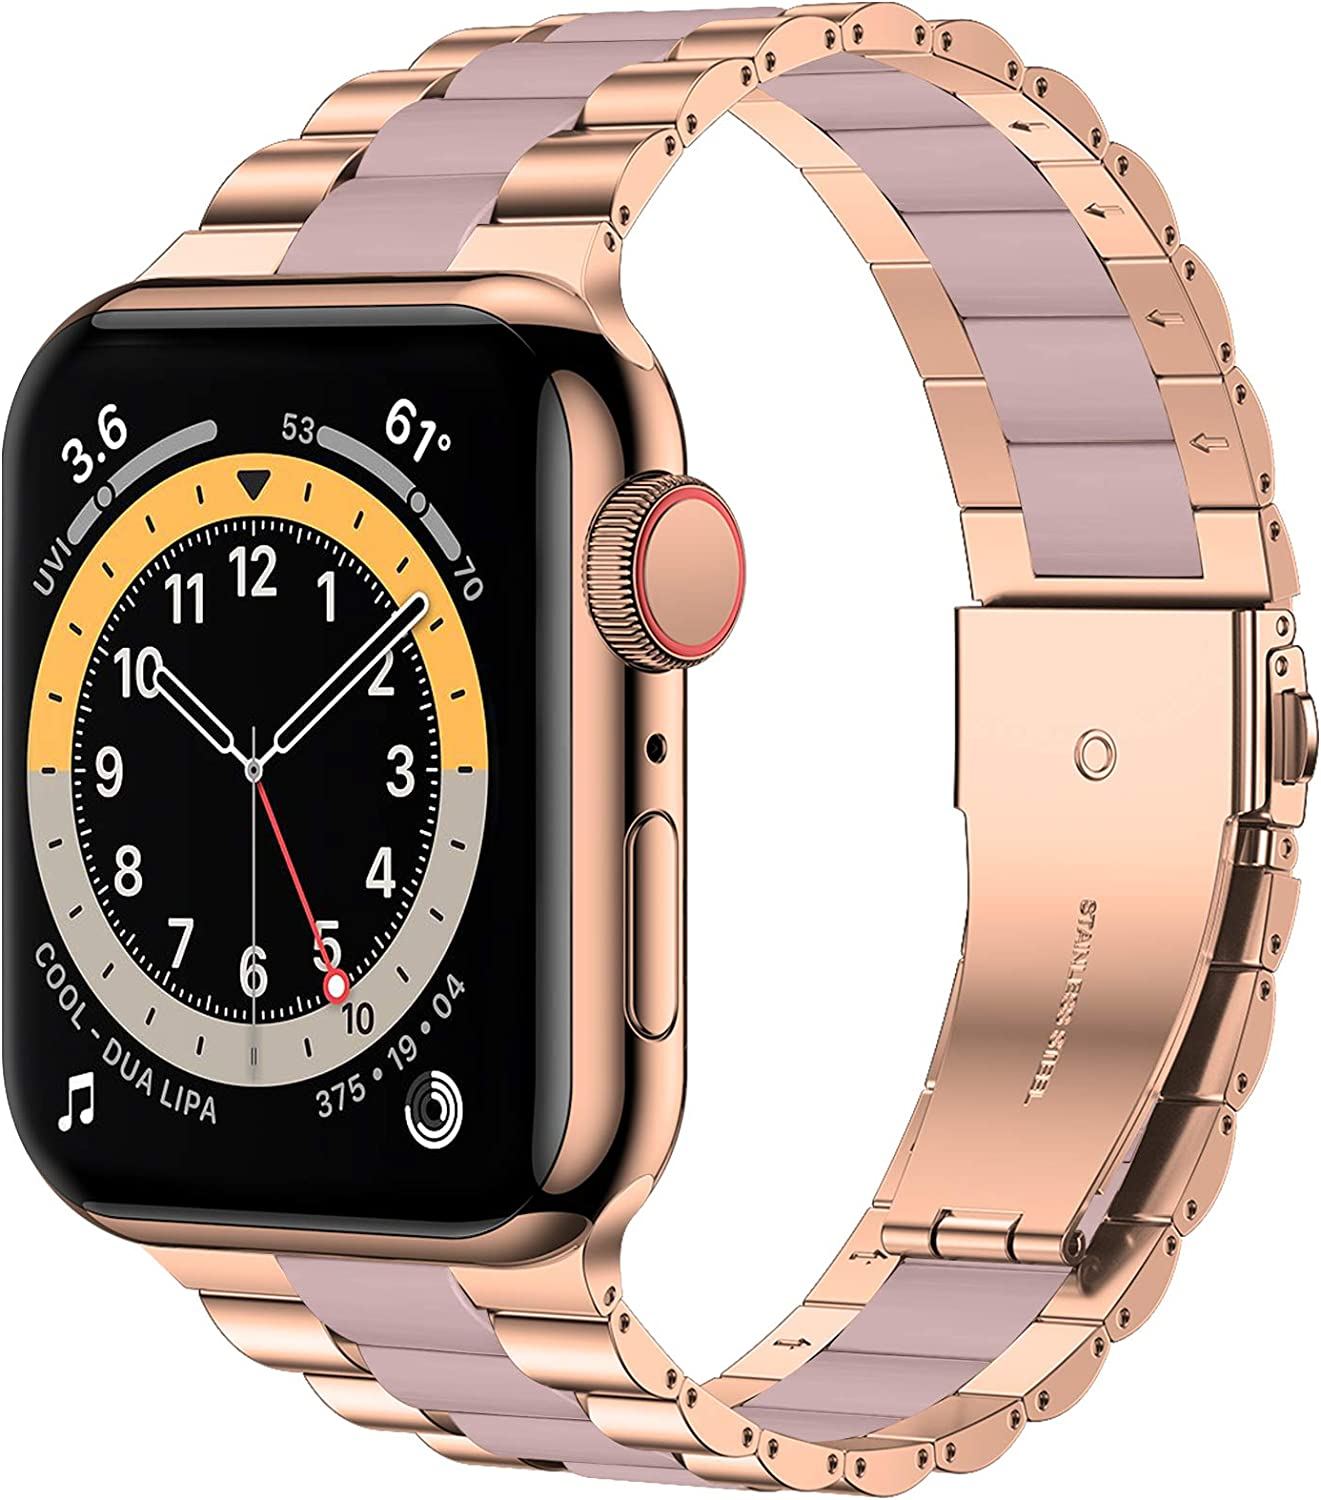 iiteeology Compatible with Apple Watch Band 44mm 42mm, Resin Stainless Steel Metal Link Wristbands for iWatch SE Series 6 5 4 3 2 1 - Rose Gold+Pink